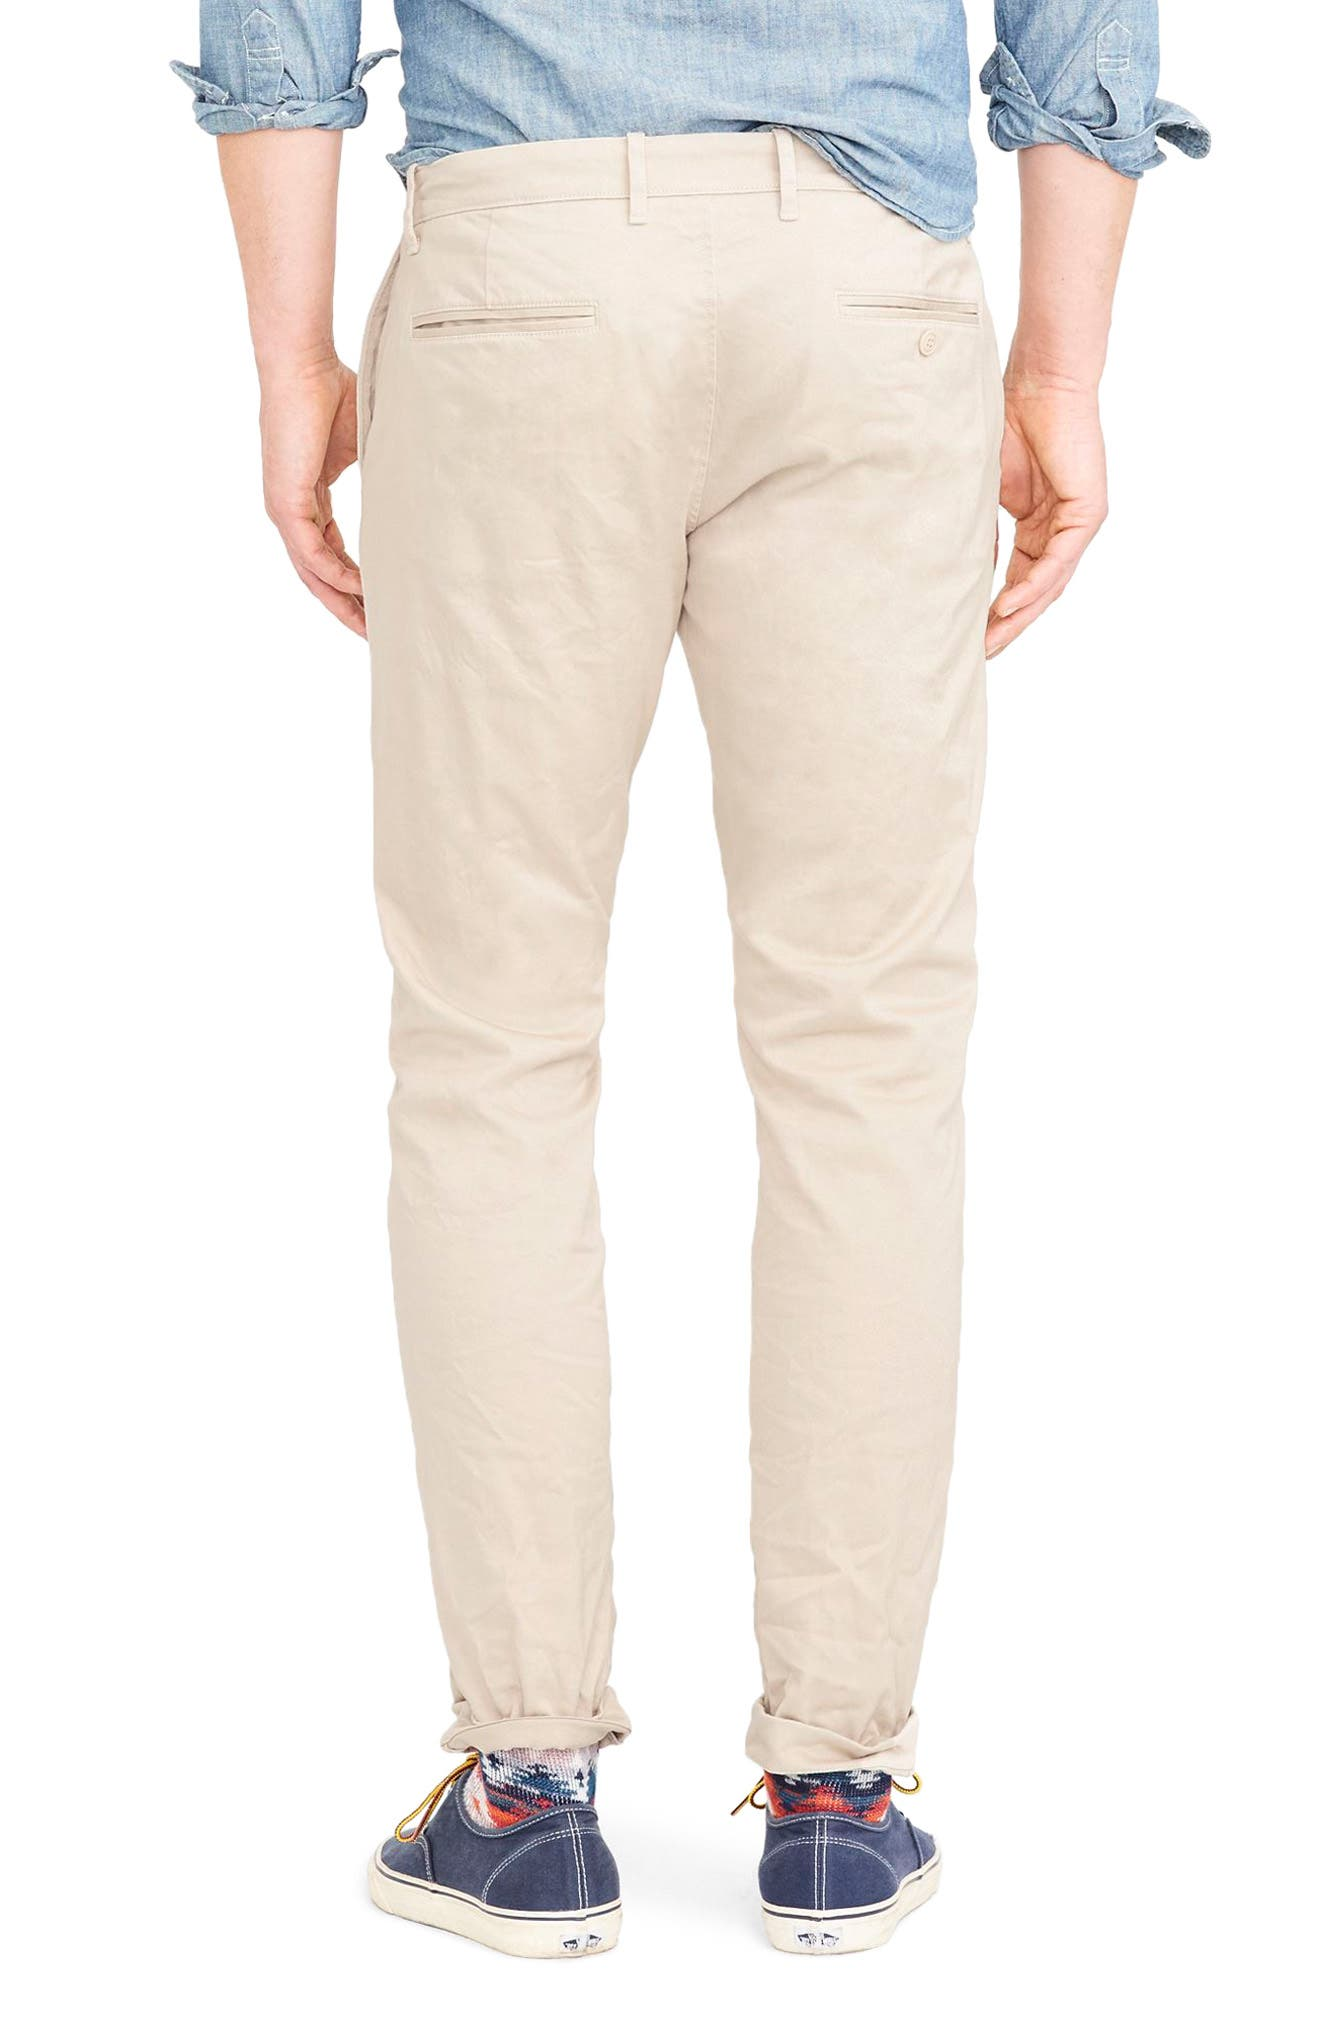 484 Slim Fit Stretch Chino Pants,                             Alternate thumbnail 15, color,